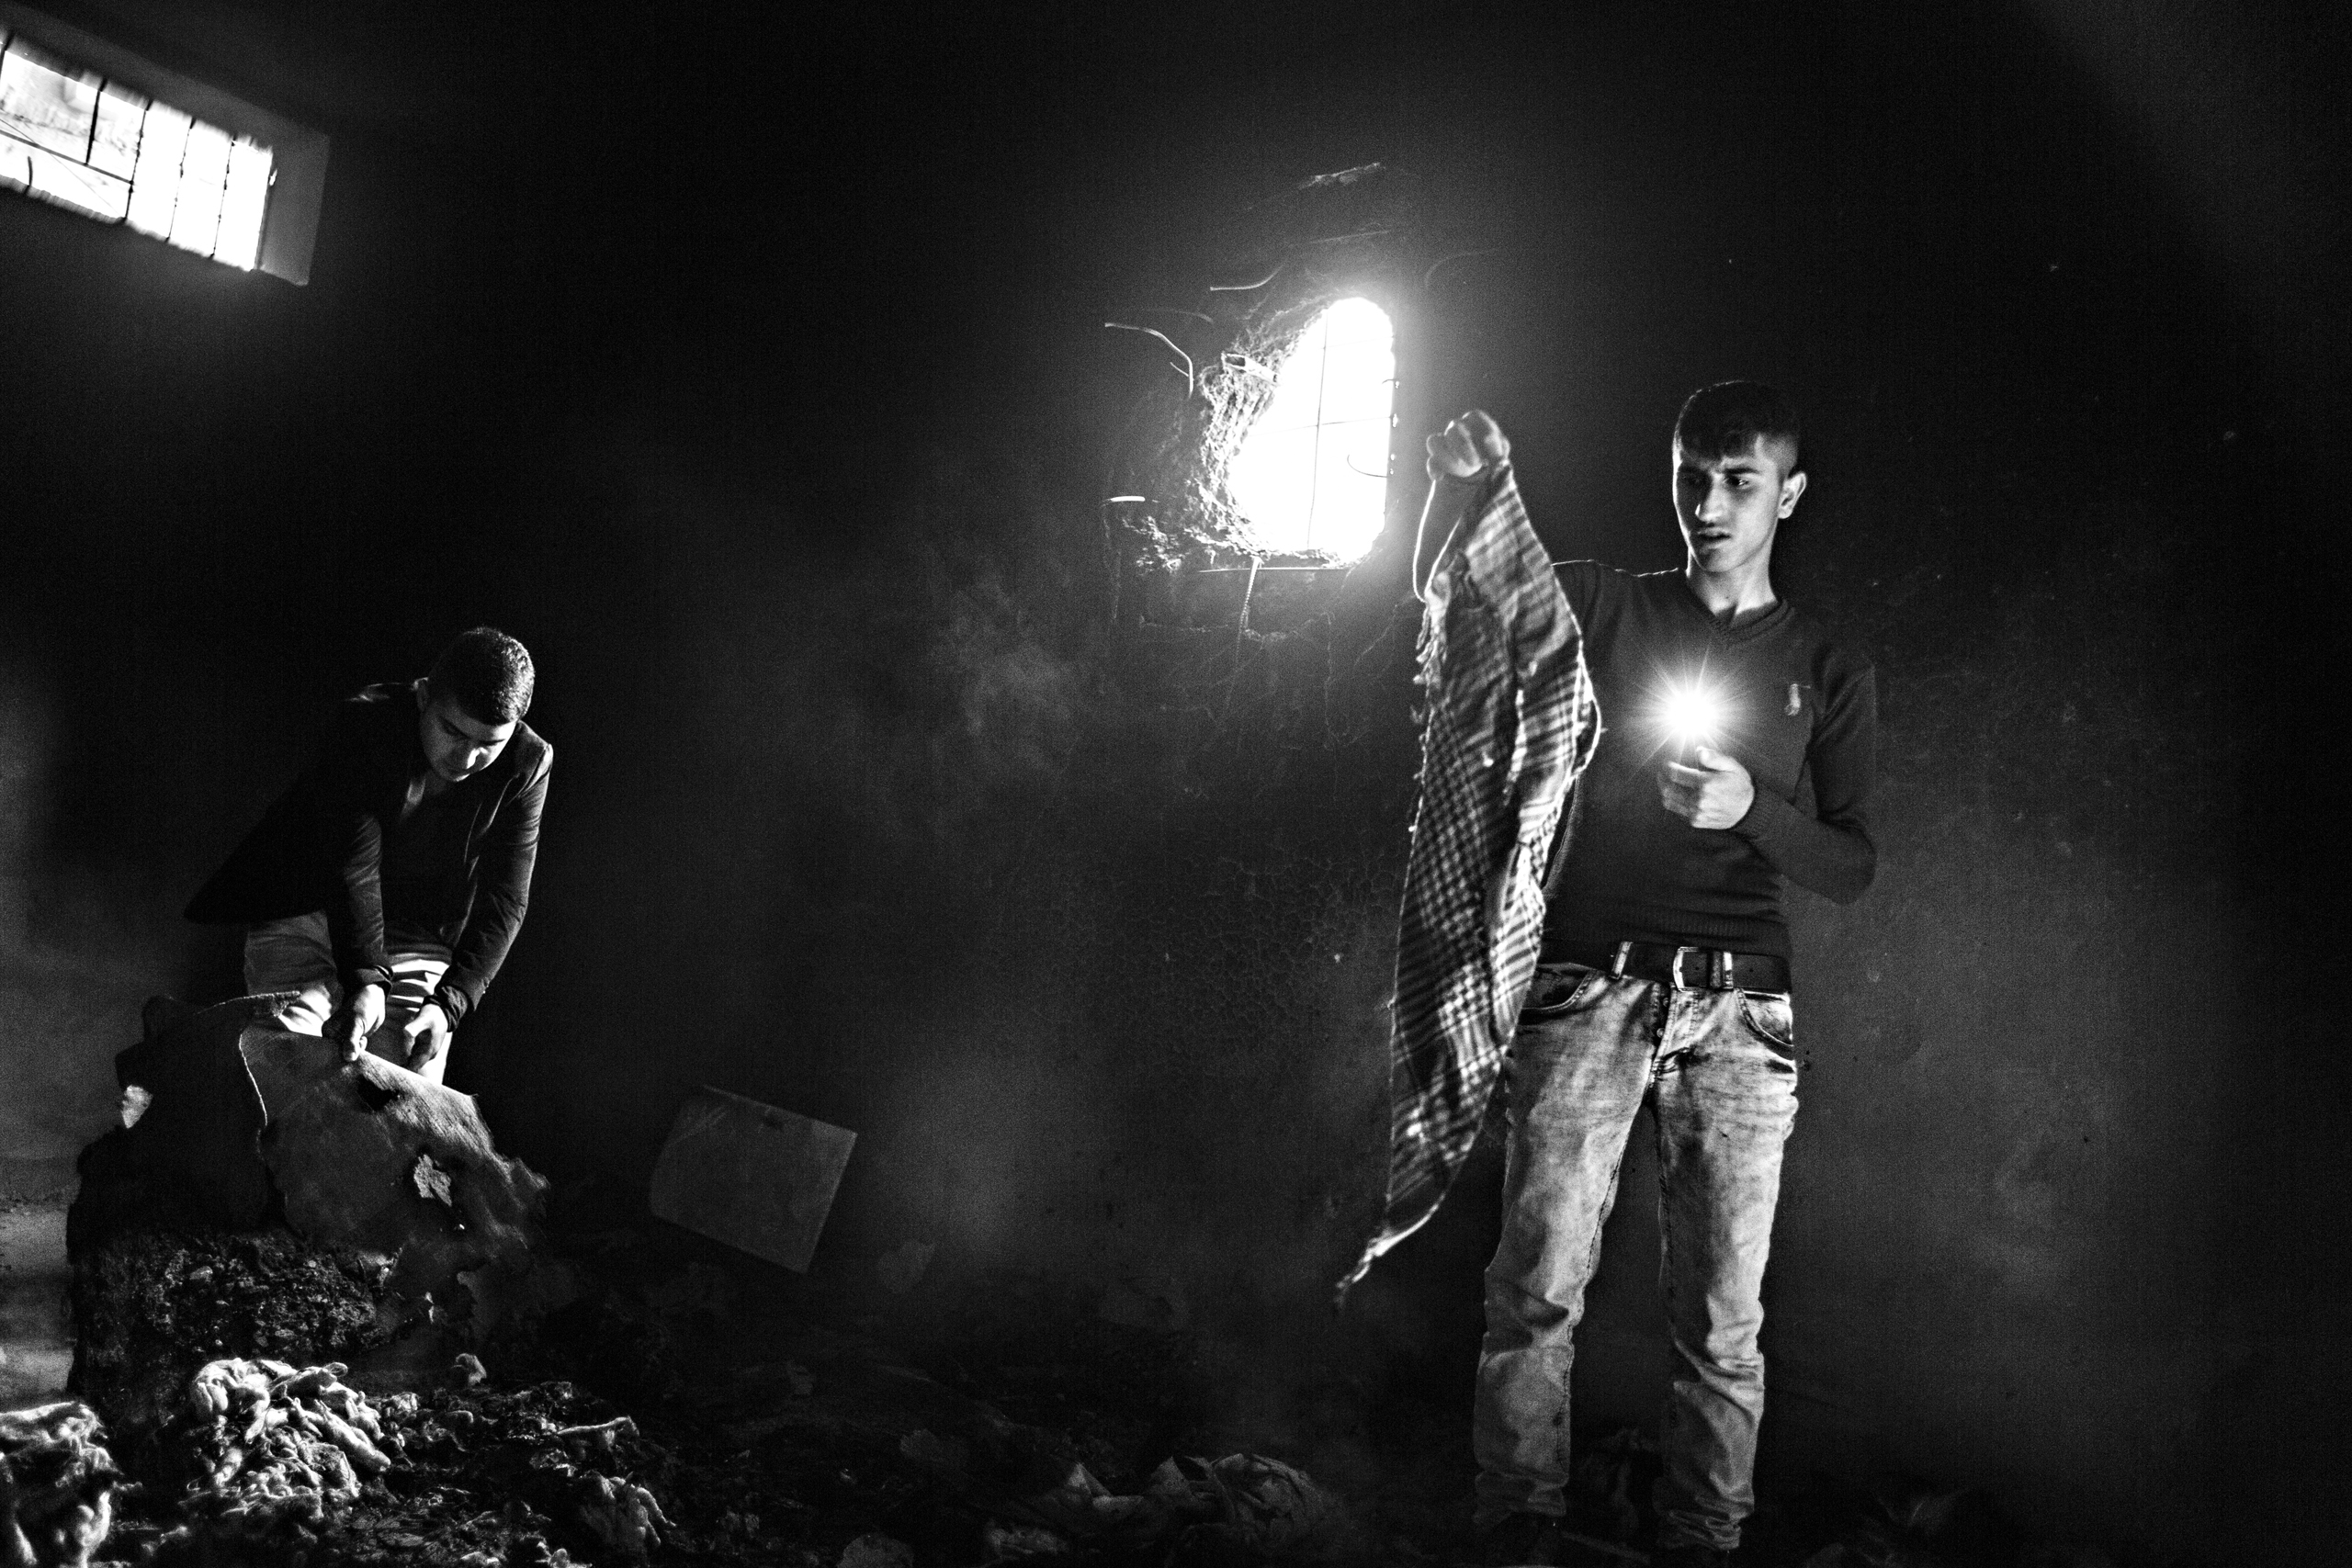 Men investigate a basement where 28 people were killed by Turkish special forces, Cizre, March 2016.